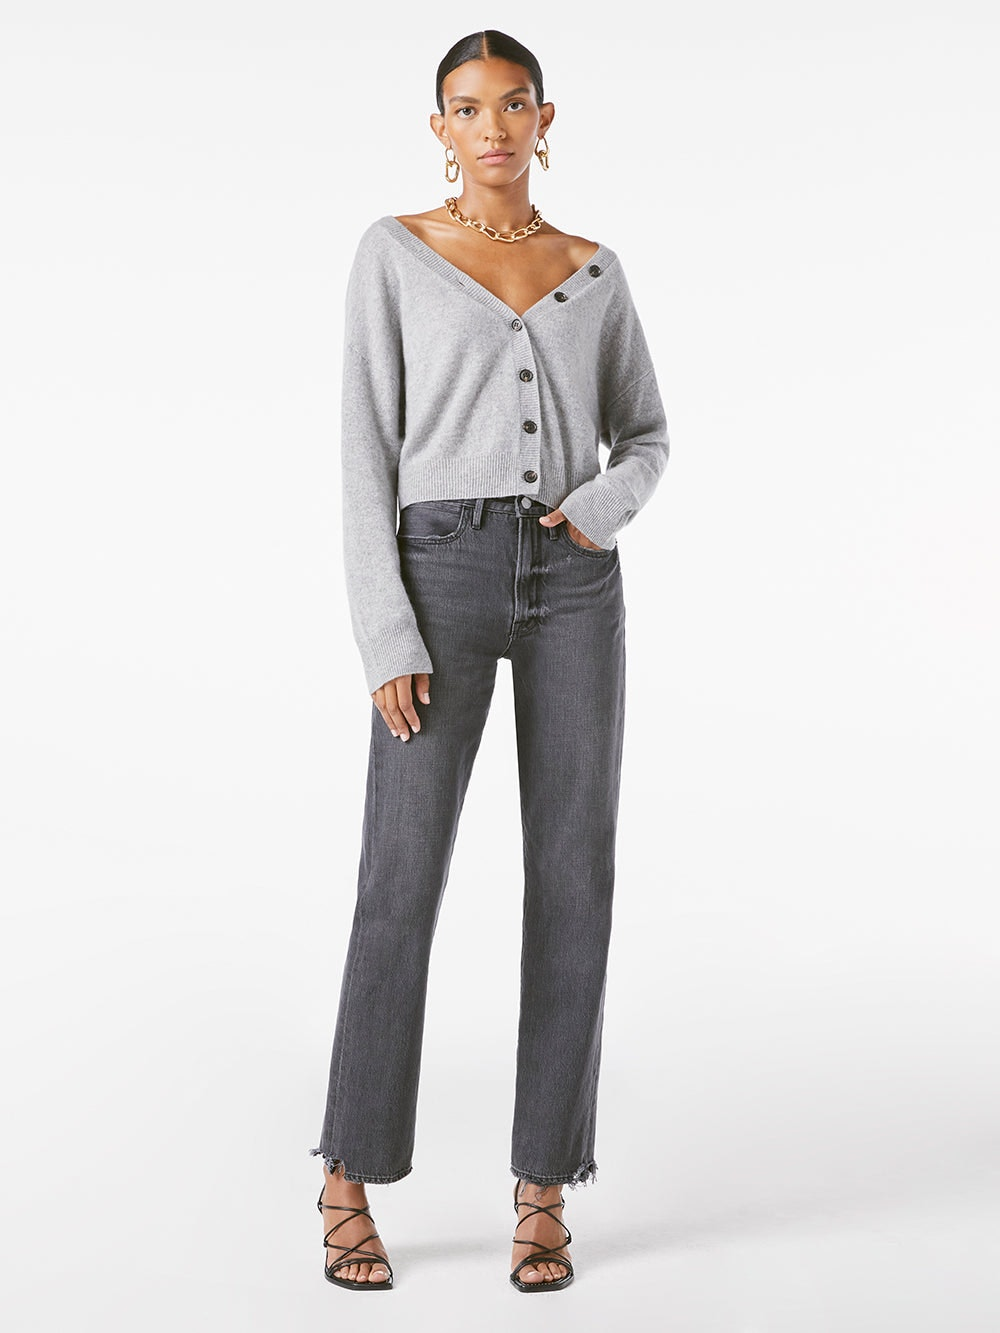 sweater front full body view